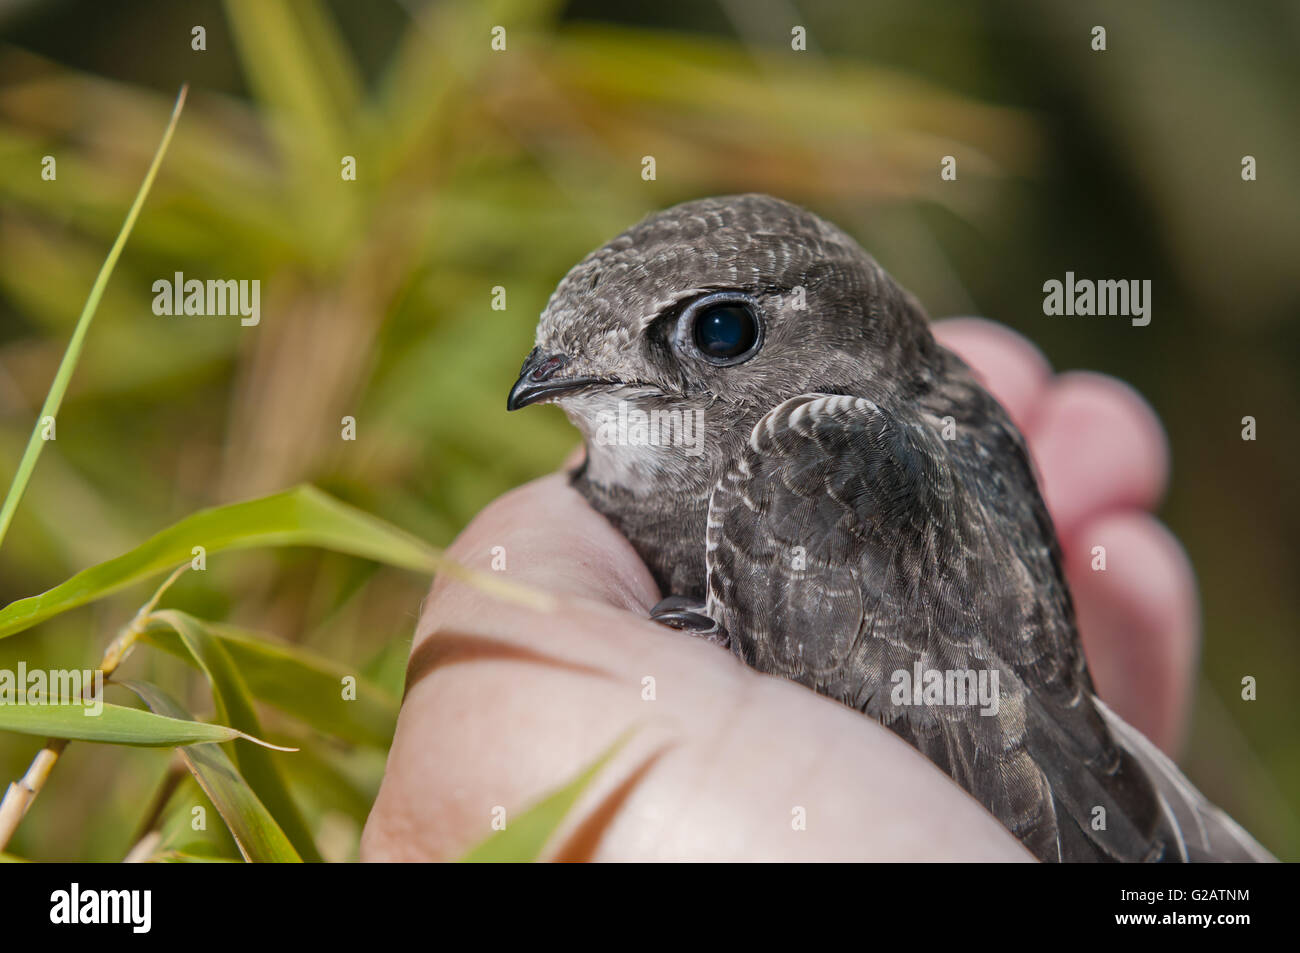 young common swift on the palm of the hand - Stock Image